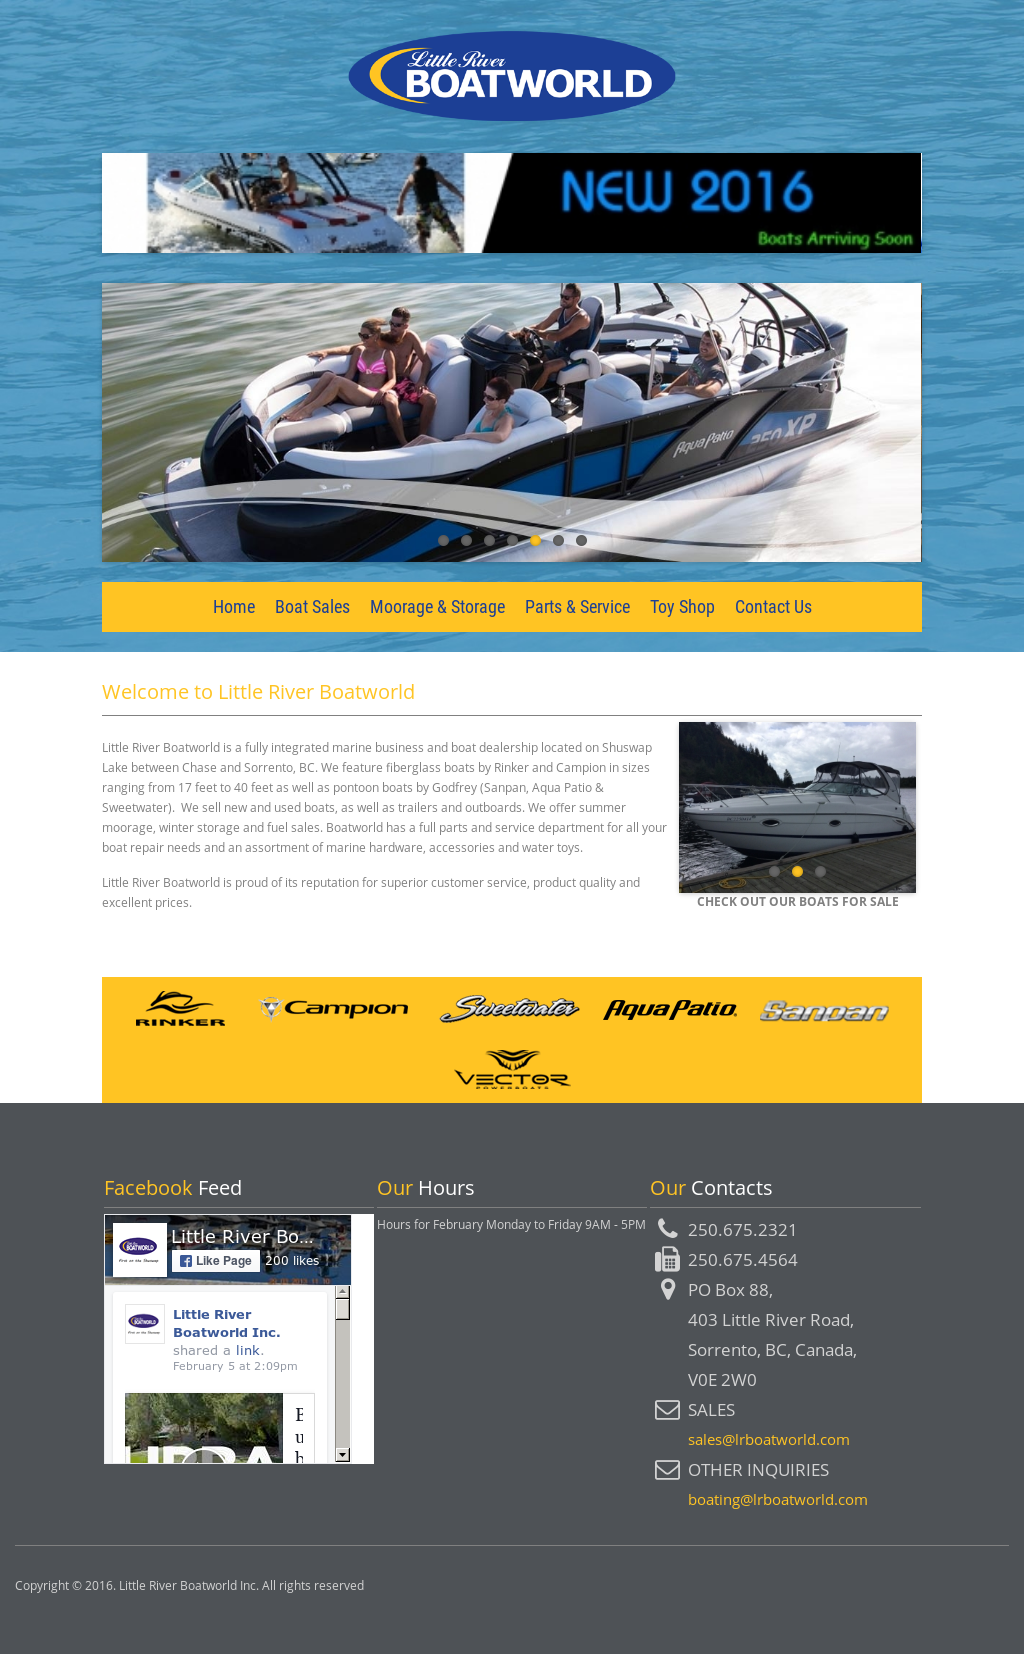 Little River Boatworld Competitors, Revenue and Employees